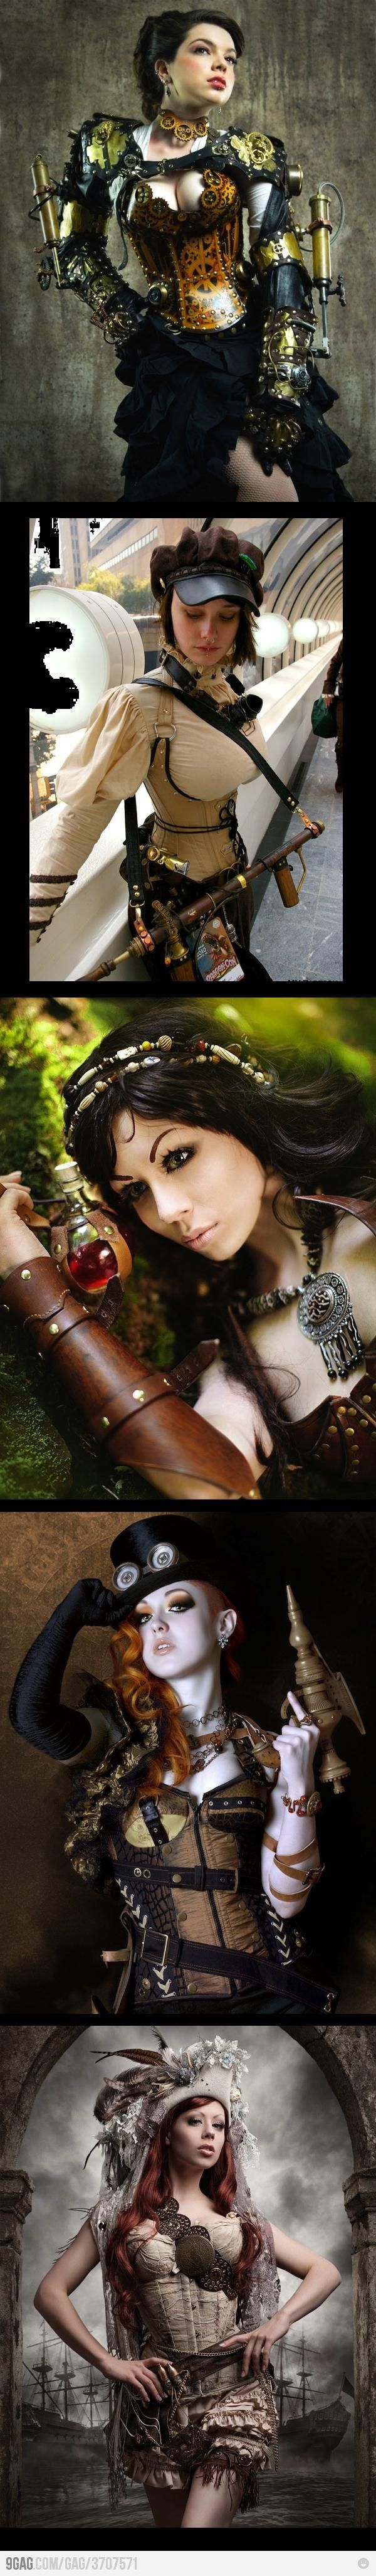 Love steampunk and these ladies Cosplay costumes are AMAZING!